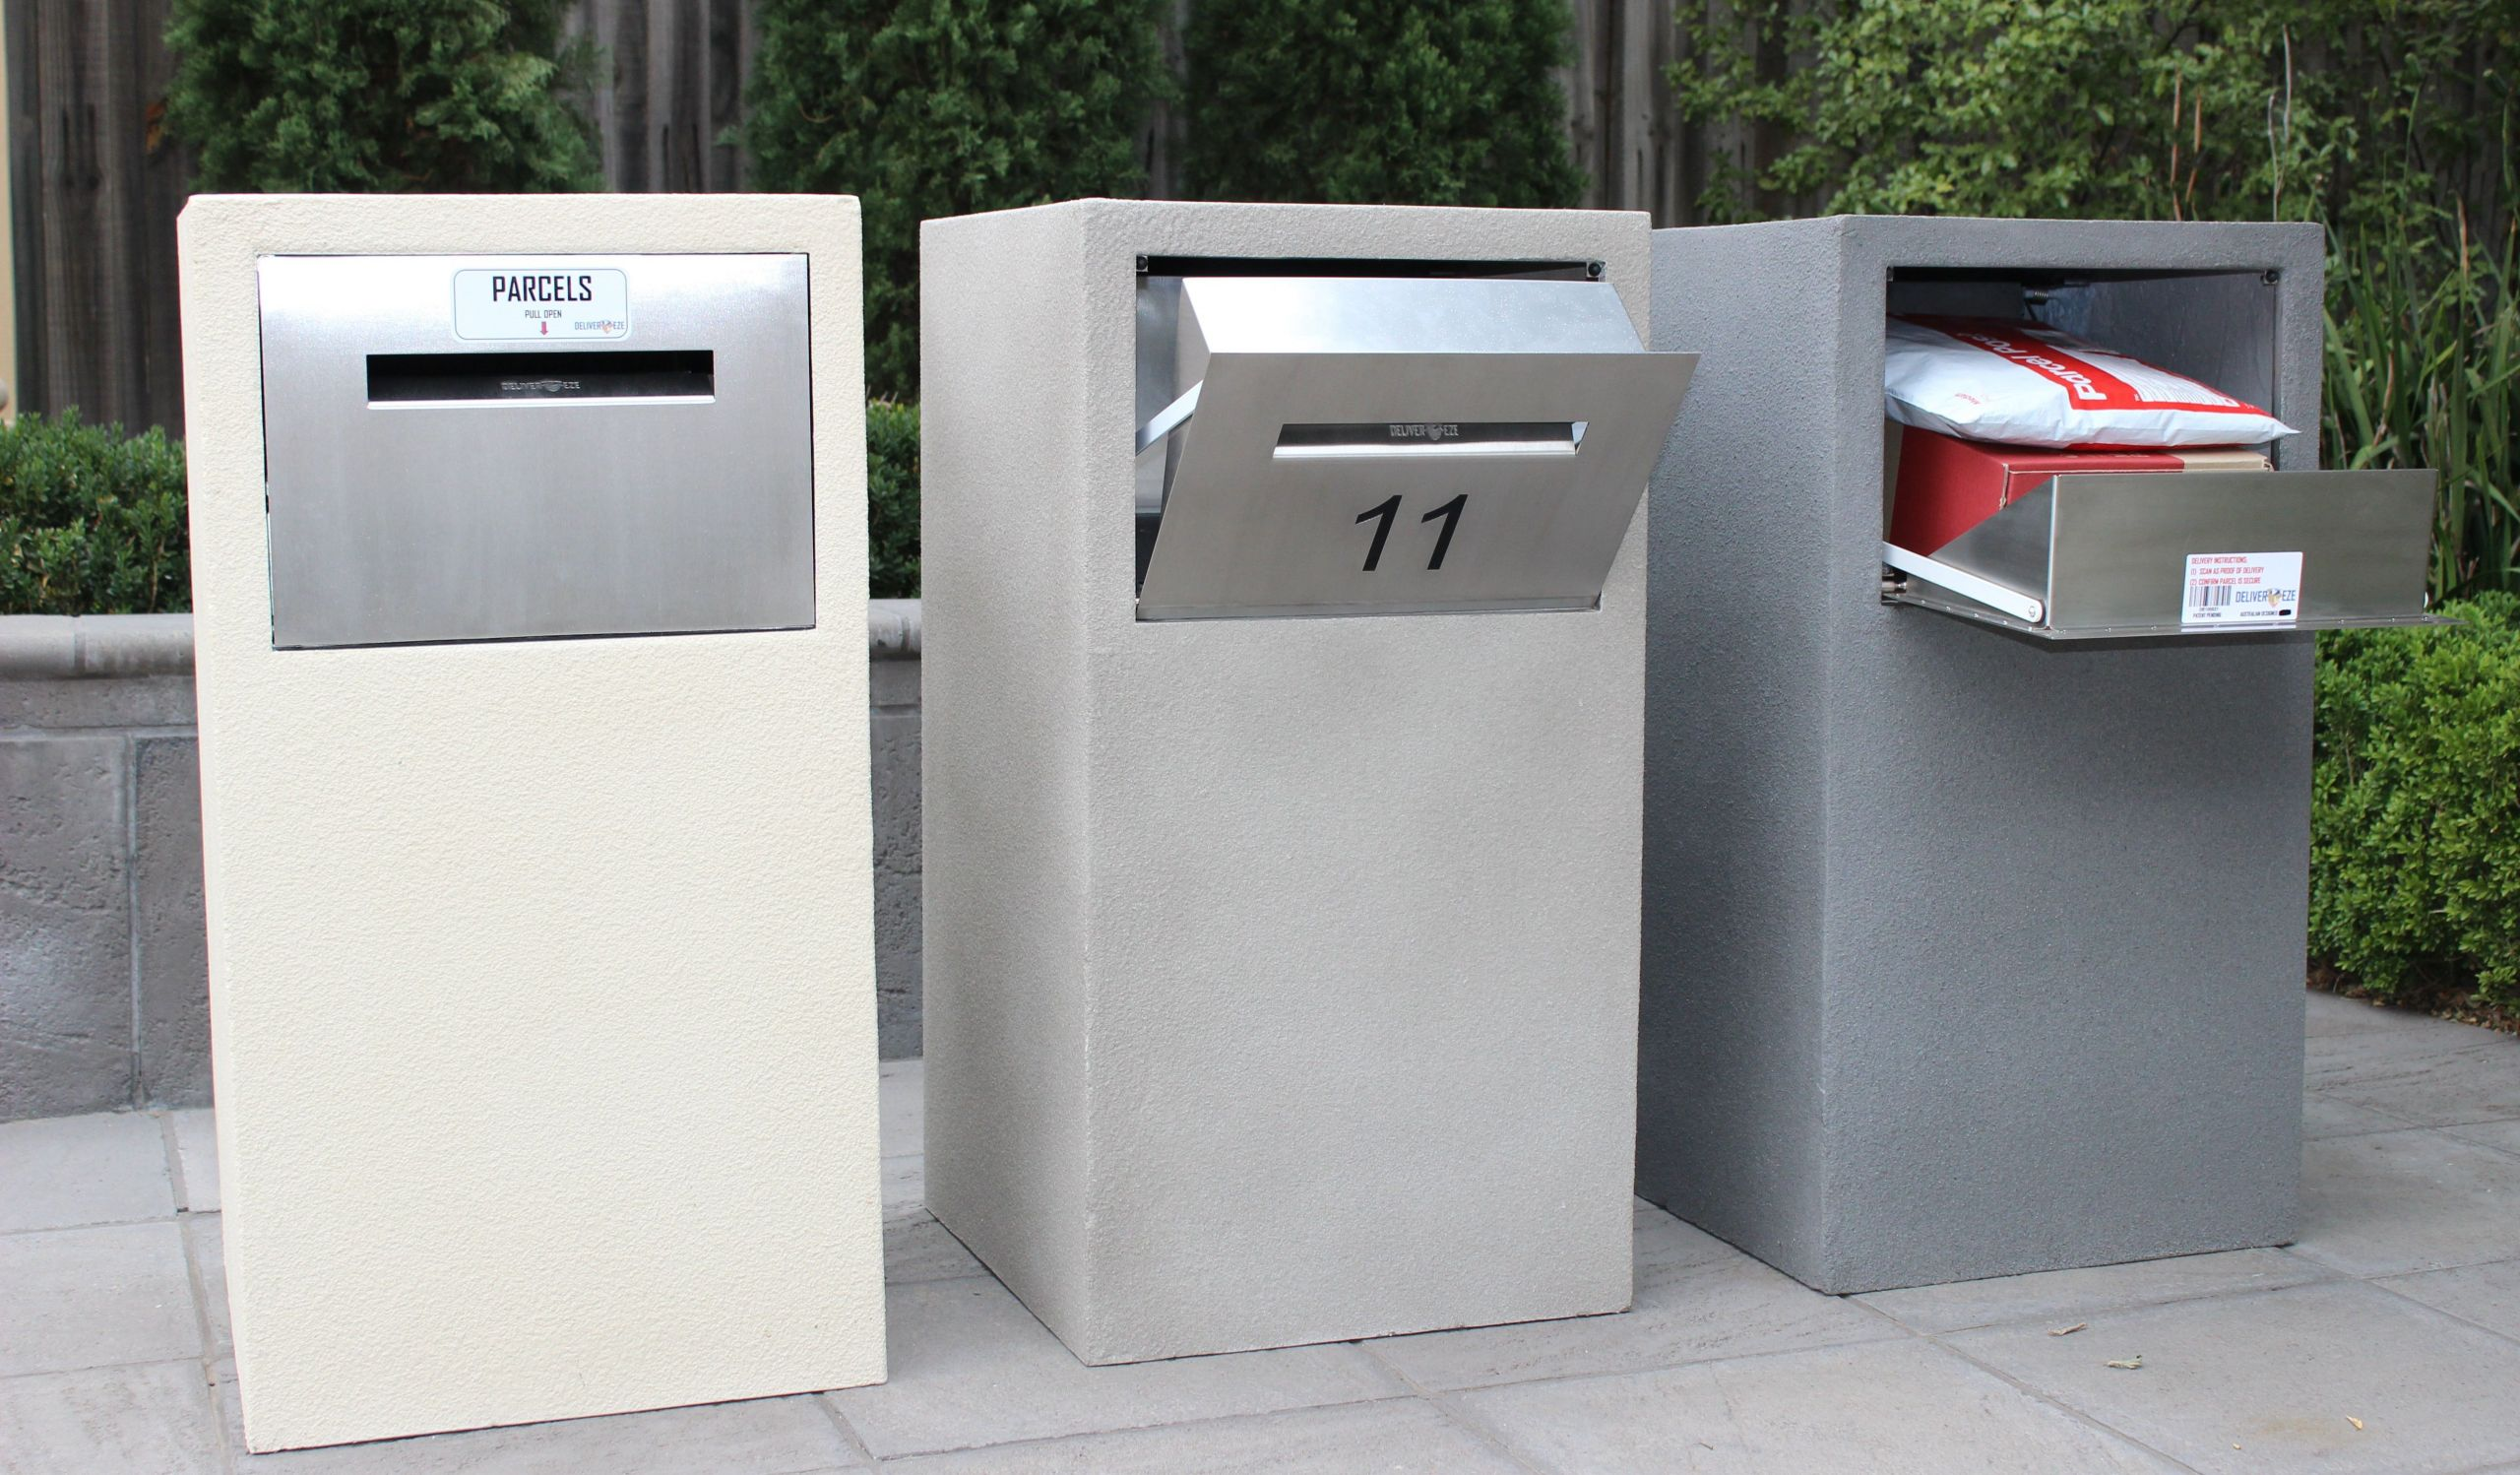 DIY Parcel Box  Stainless Steel Letterbox Parcelbox